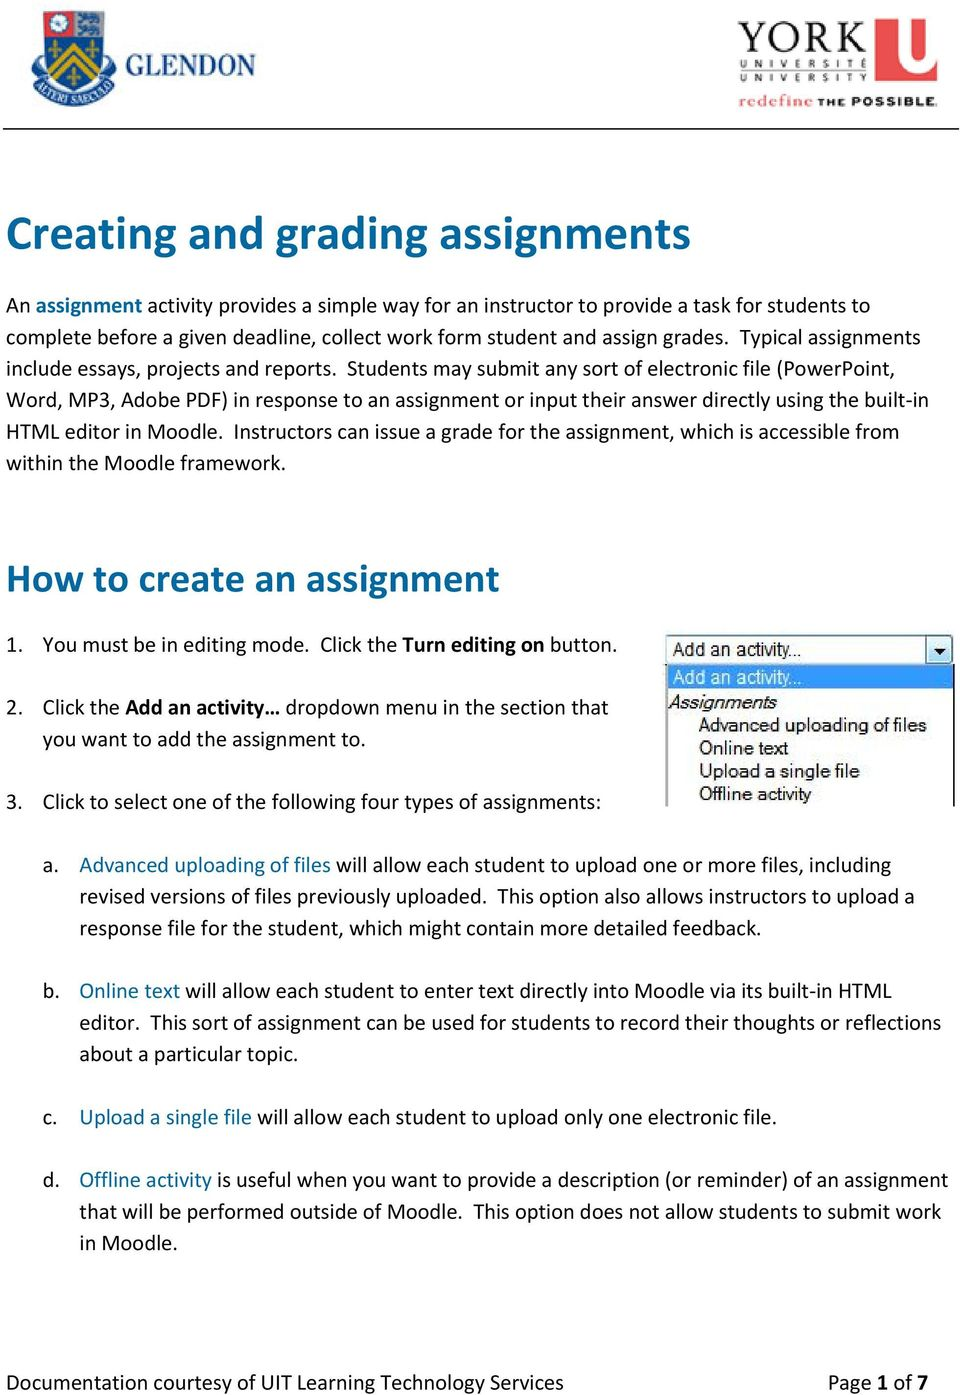 Students may submit any sort of electronic file (PowerPoint, Word, MP3, Adobe PDF) in response to an assignment or input their answer directly using the built in HTML editor in Moodle.